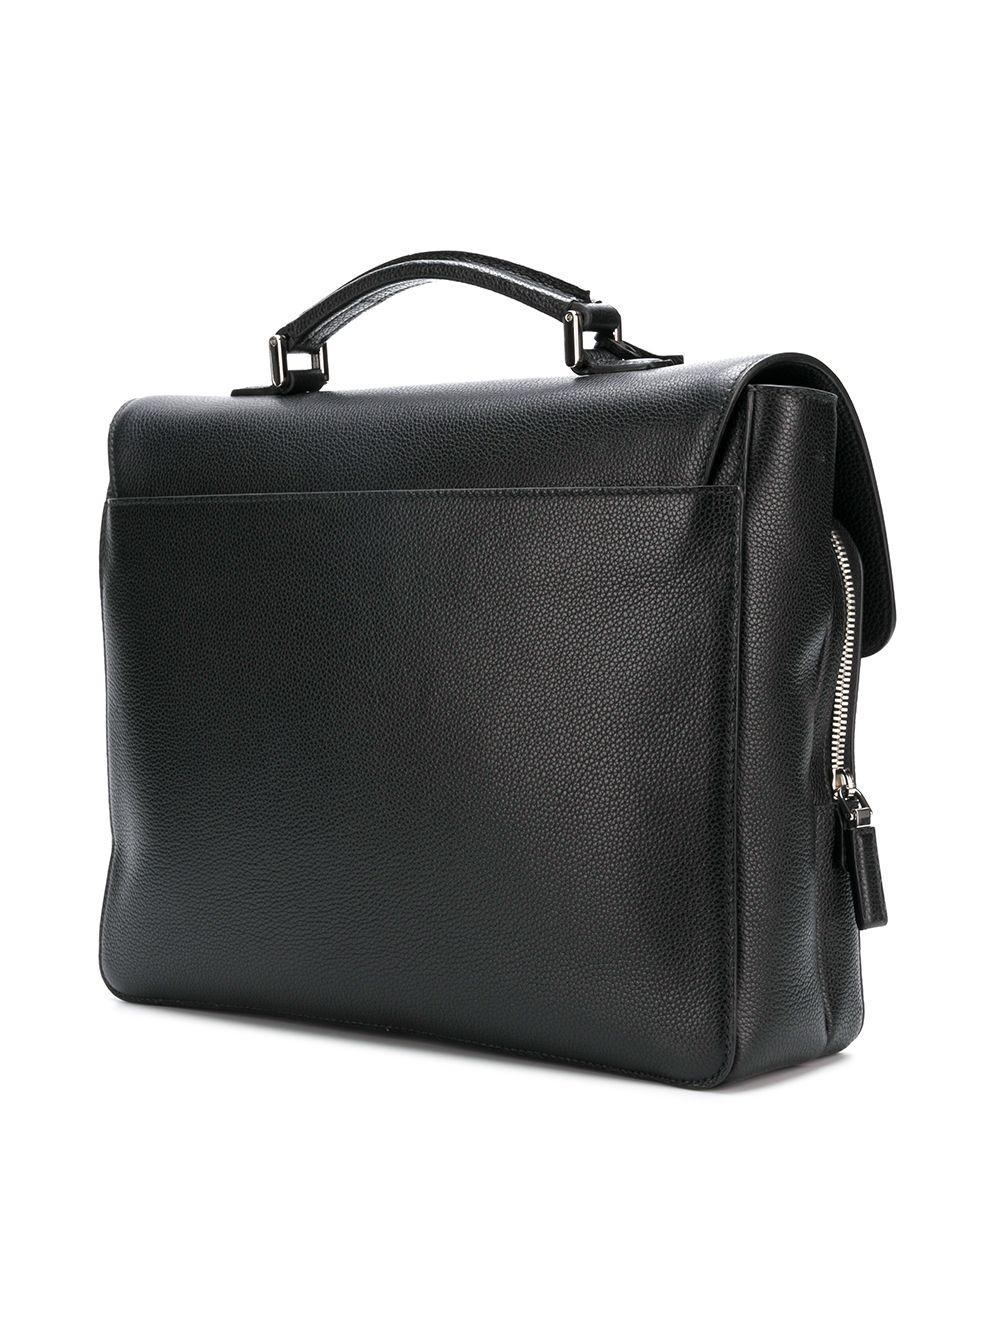 317167010bda ... wholesale lyst prada laptop bag in black for men 3e959 3d03b